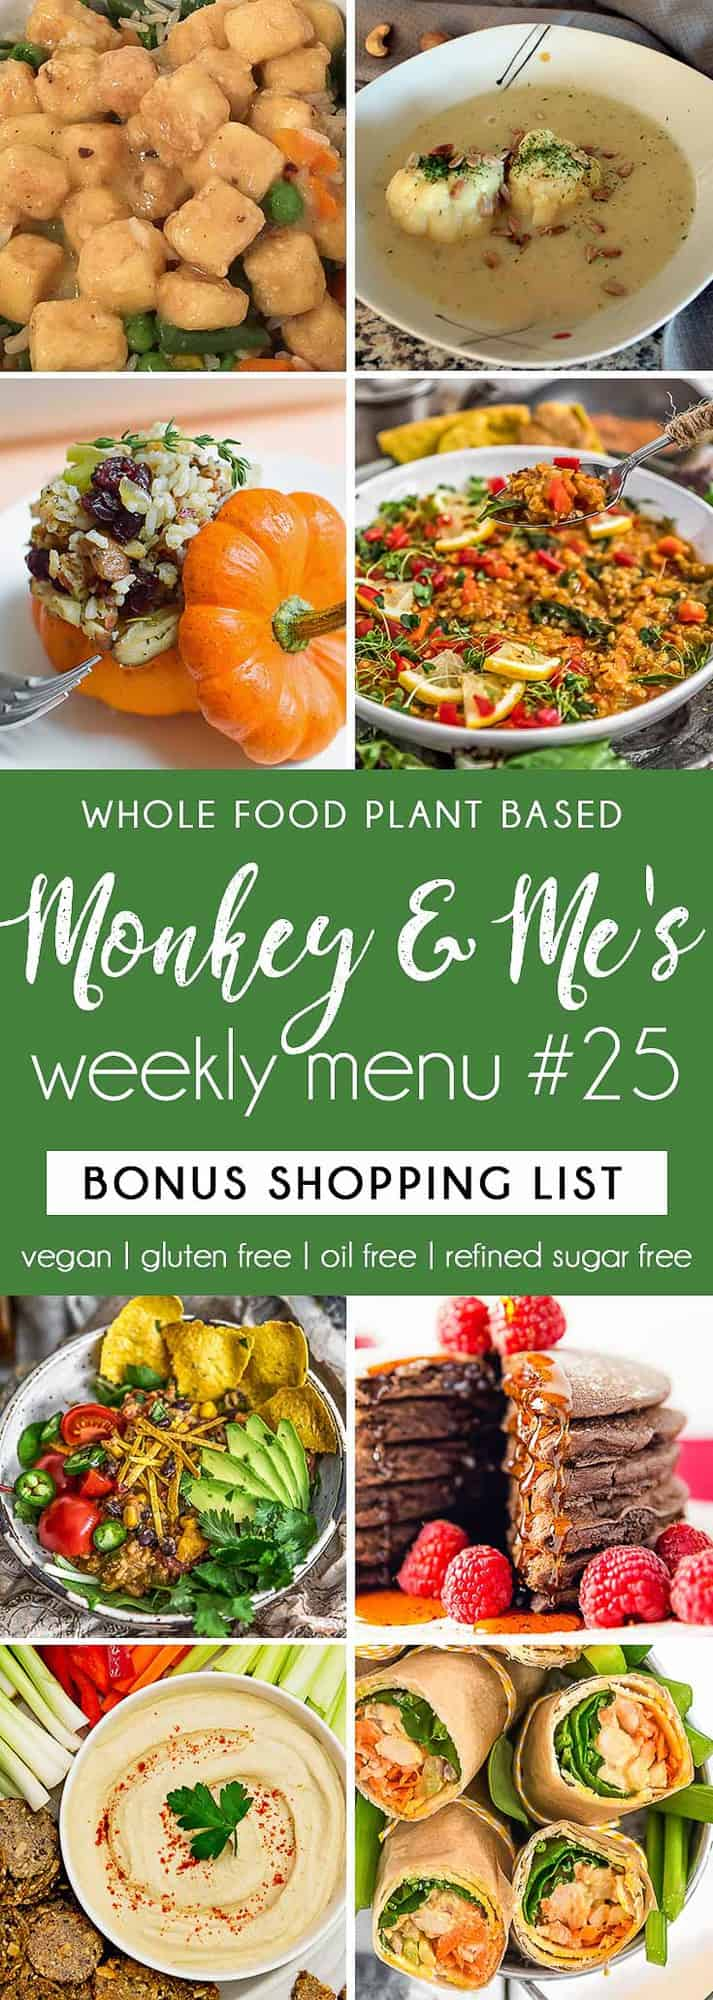 Monkey and Me's Menu 25 featuring 8 recipes